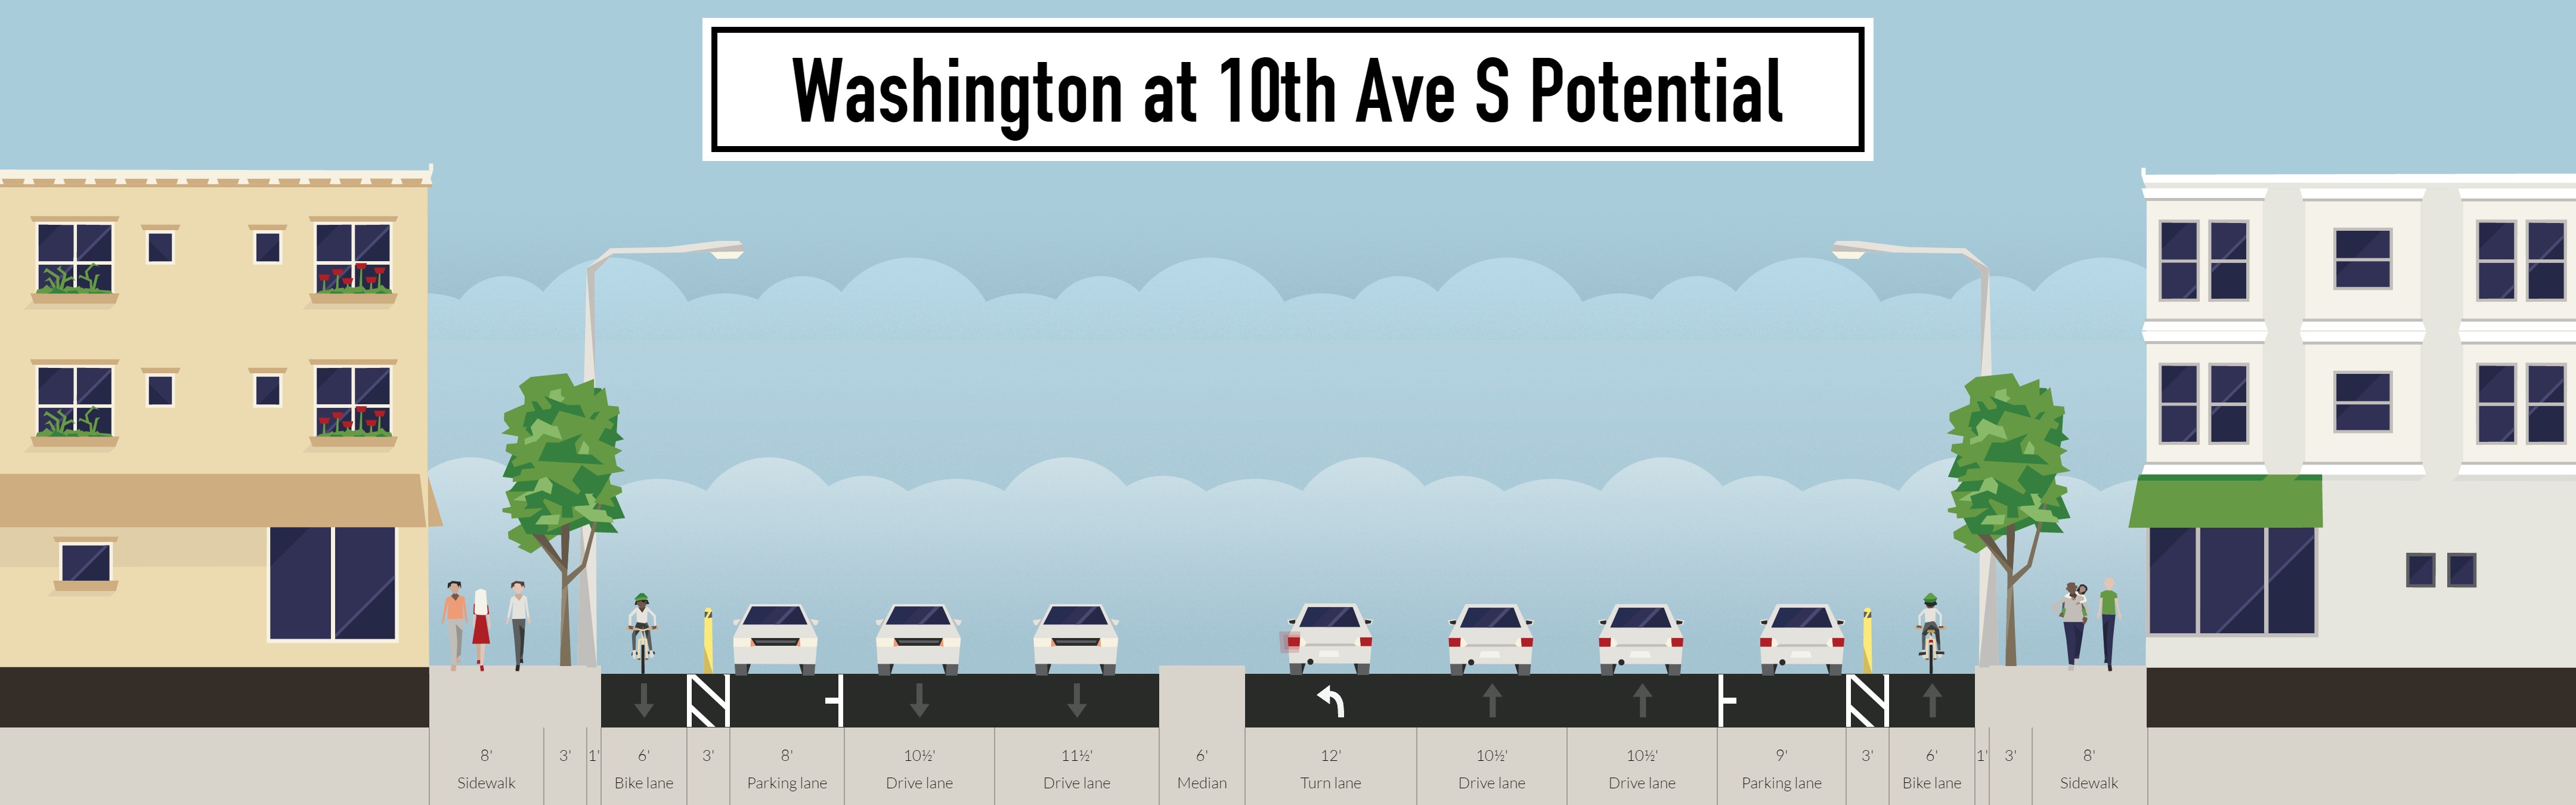 washington-at-10th-ave-s-potential.png